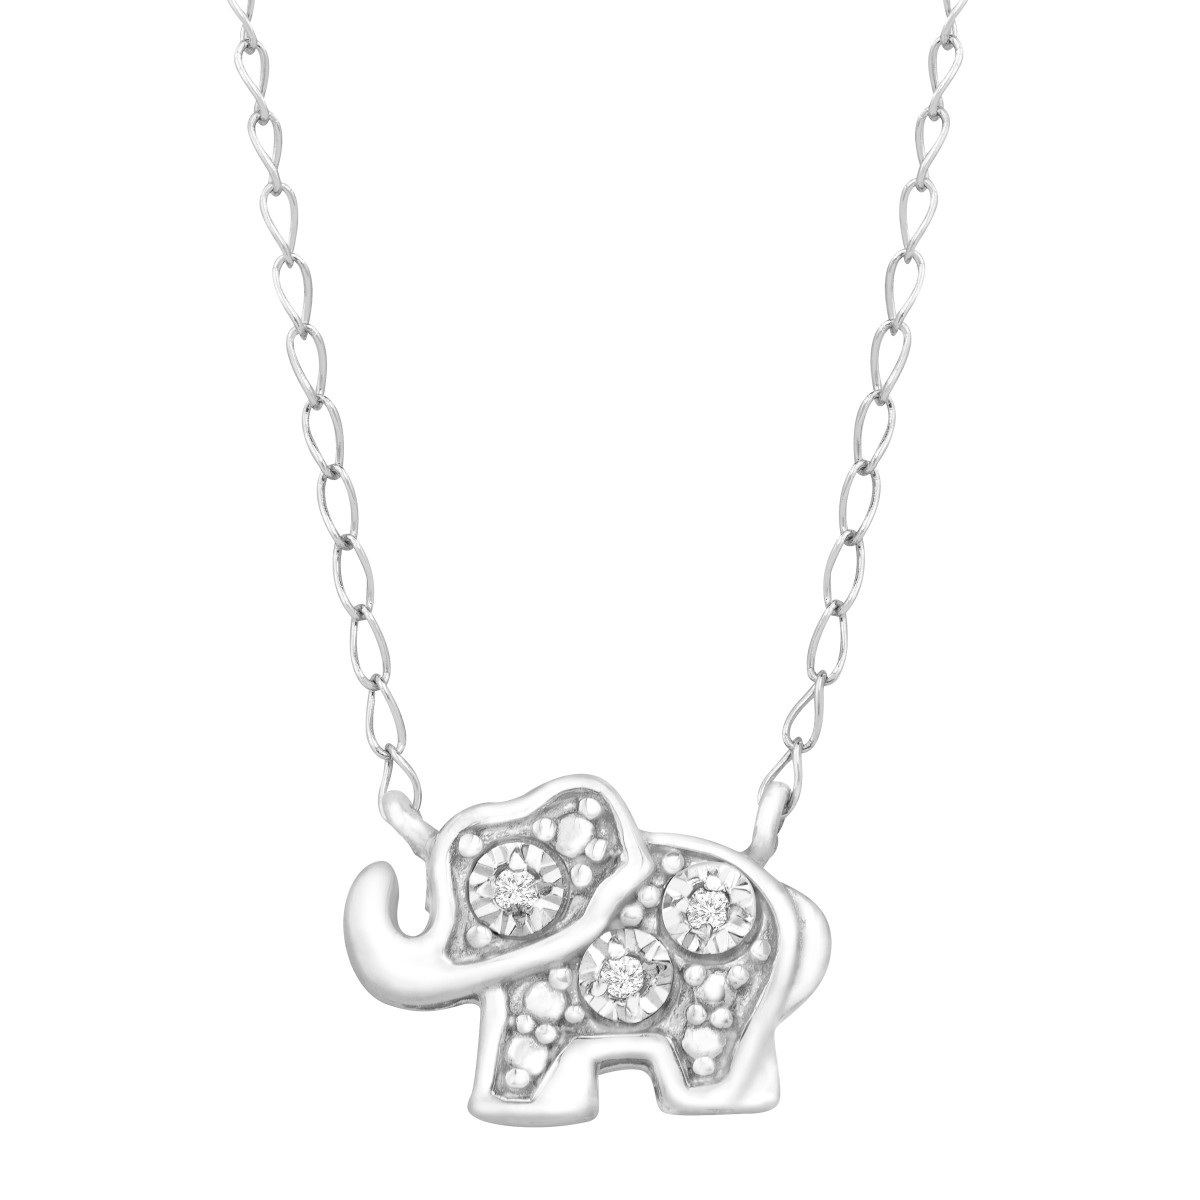 Teeny Tiny Elephant Necklace with Diamonds